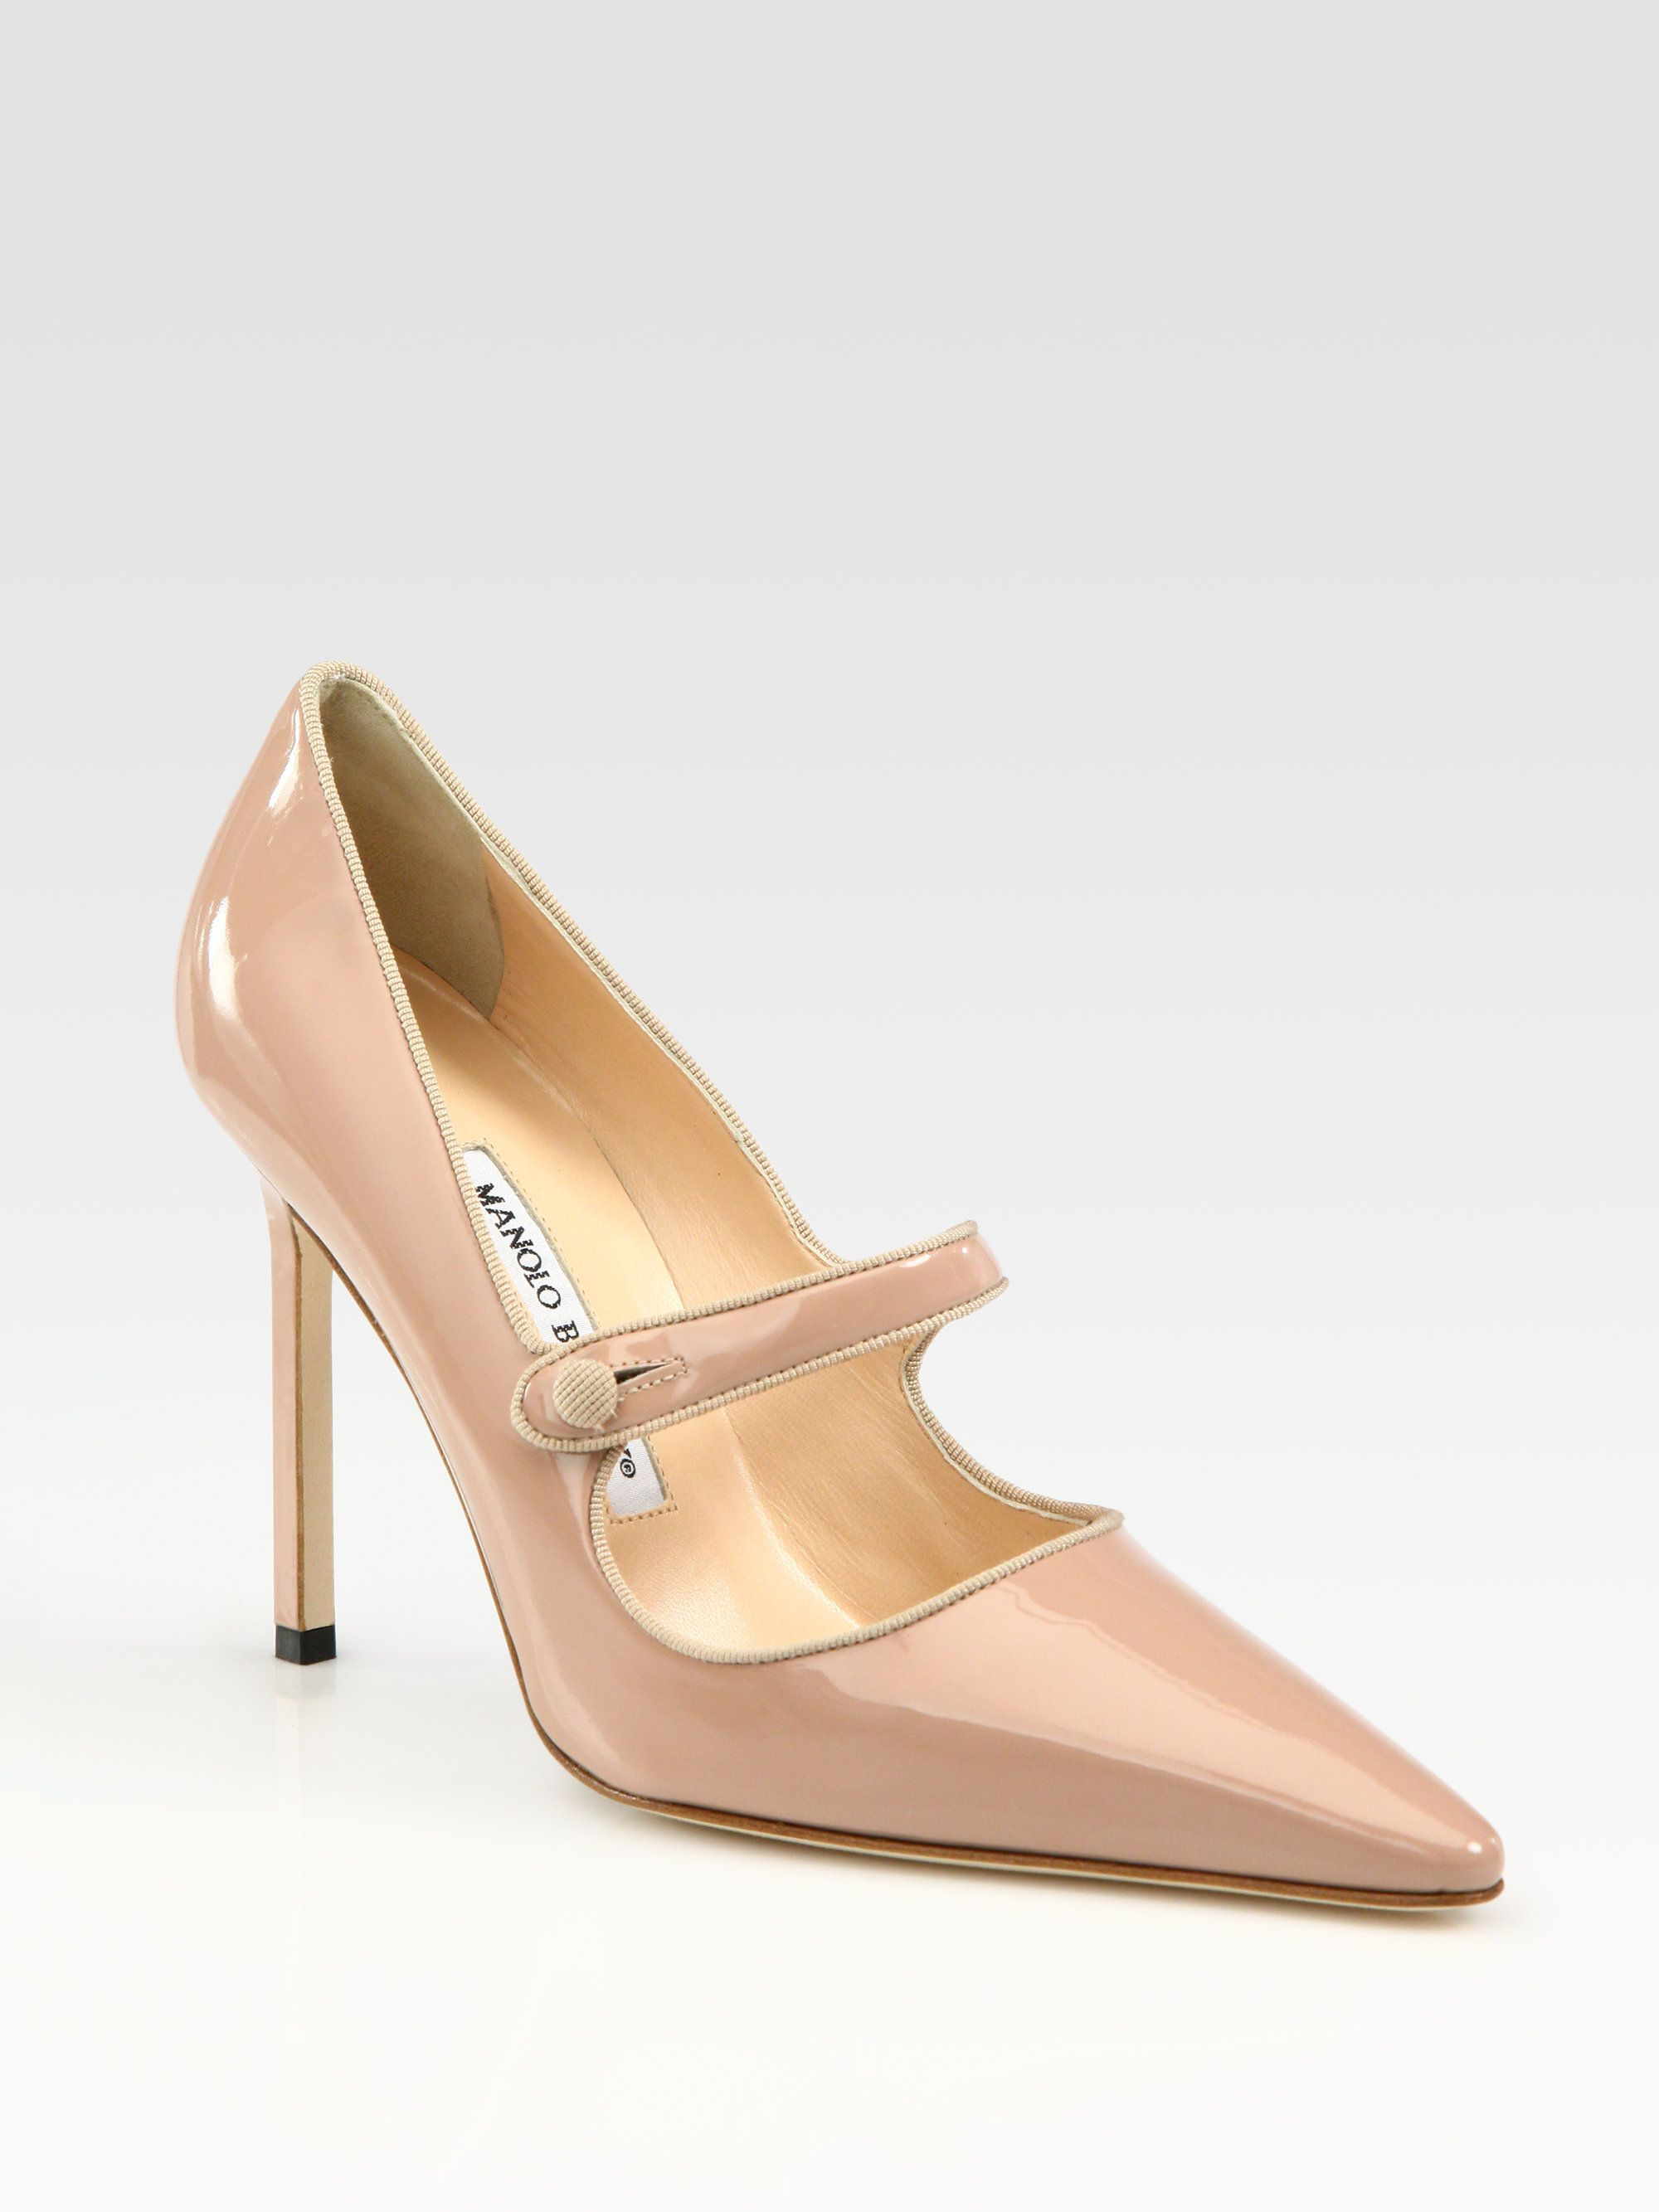 65f981664dc Manolo Blahnik Campari Patent Leather Mary Jane Pumps in (nude ...